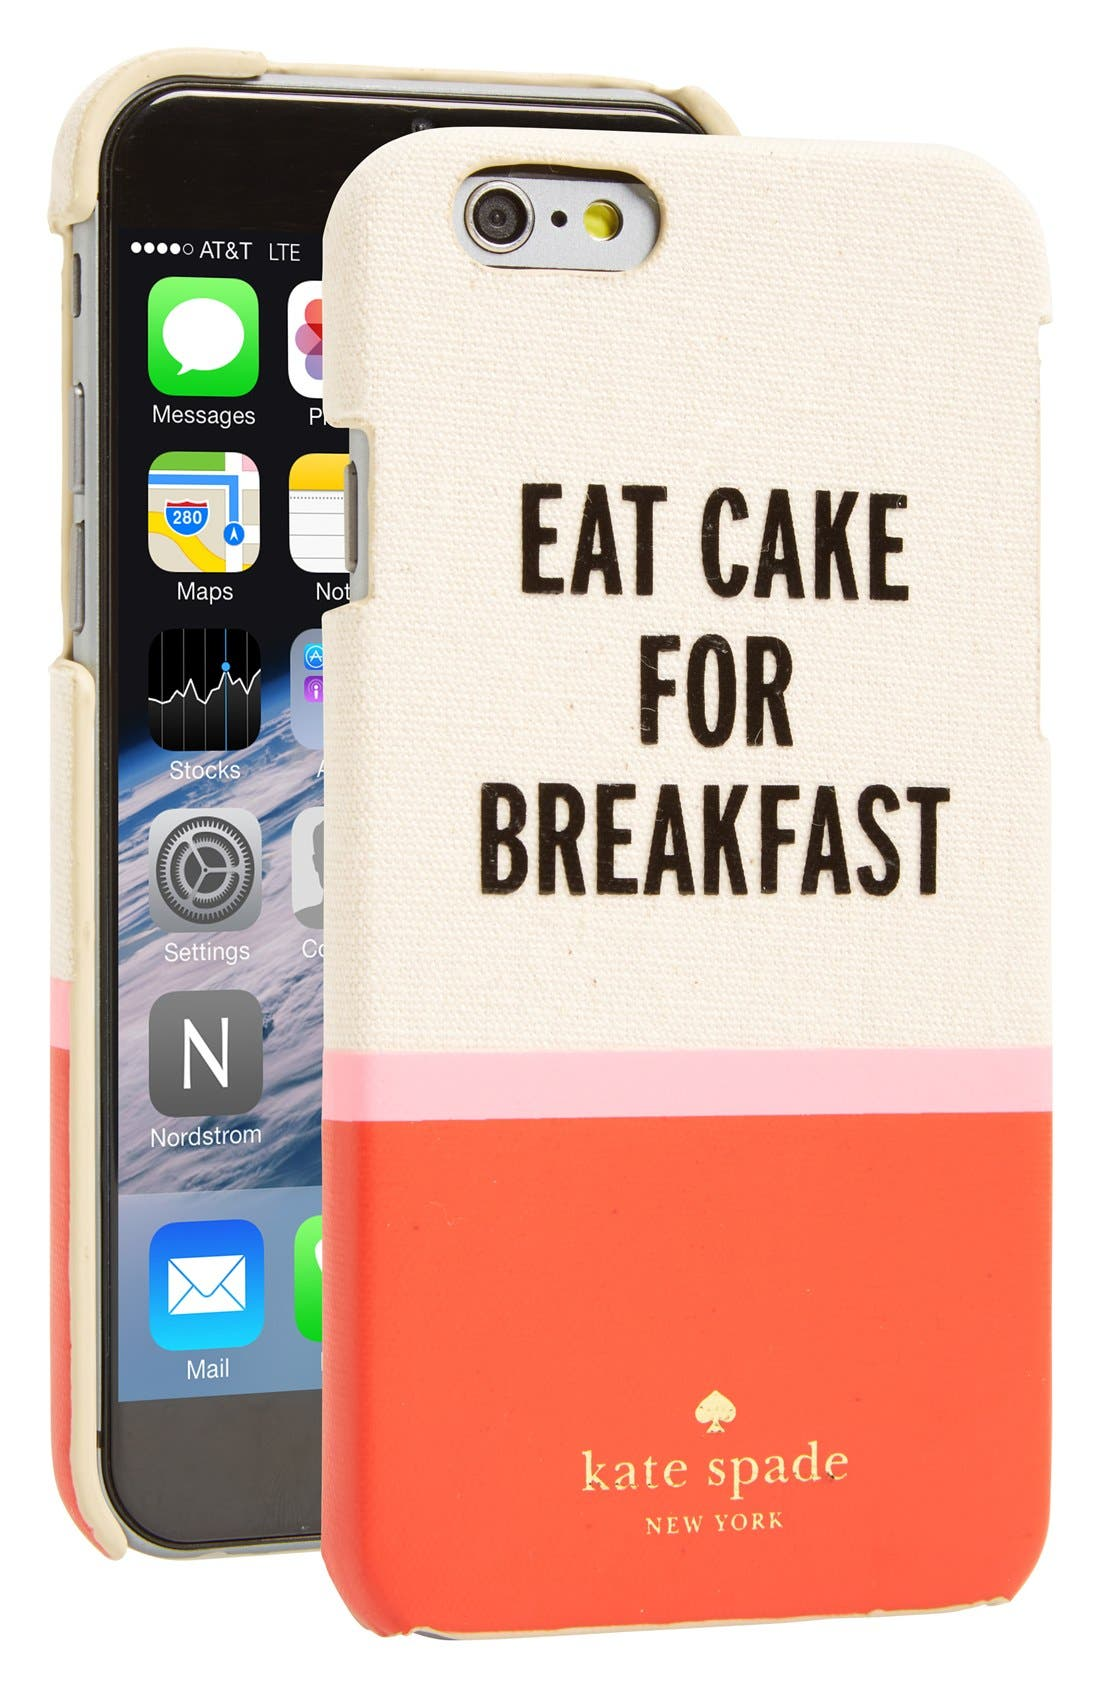 Main Image - kate spade new york 'eat cake for breakfast' iPhone 6 & 6s case